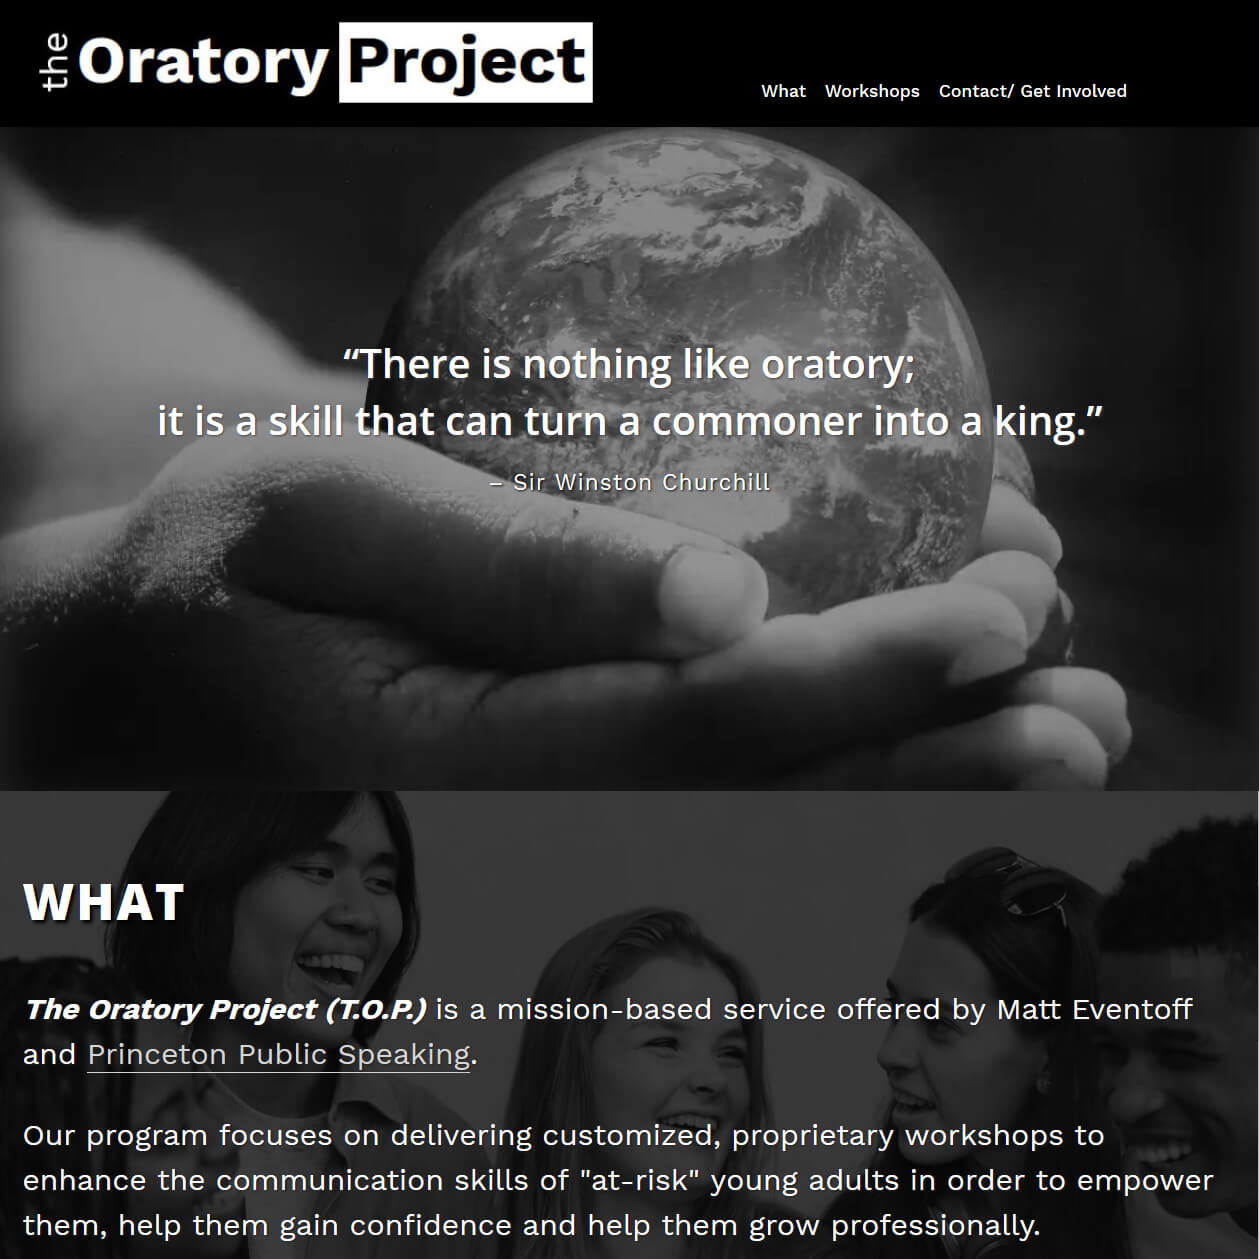 The Oratory Project